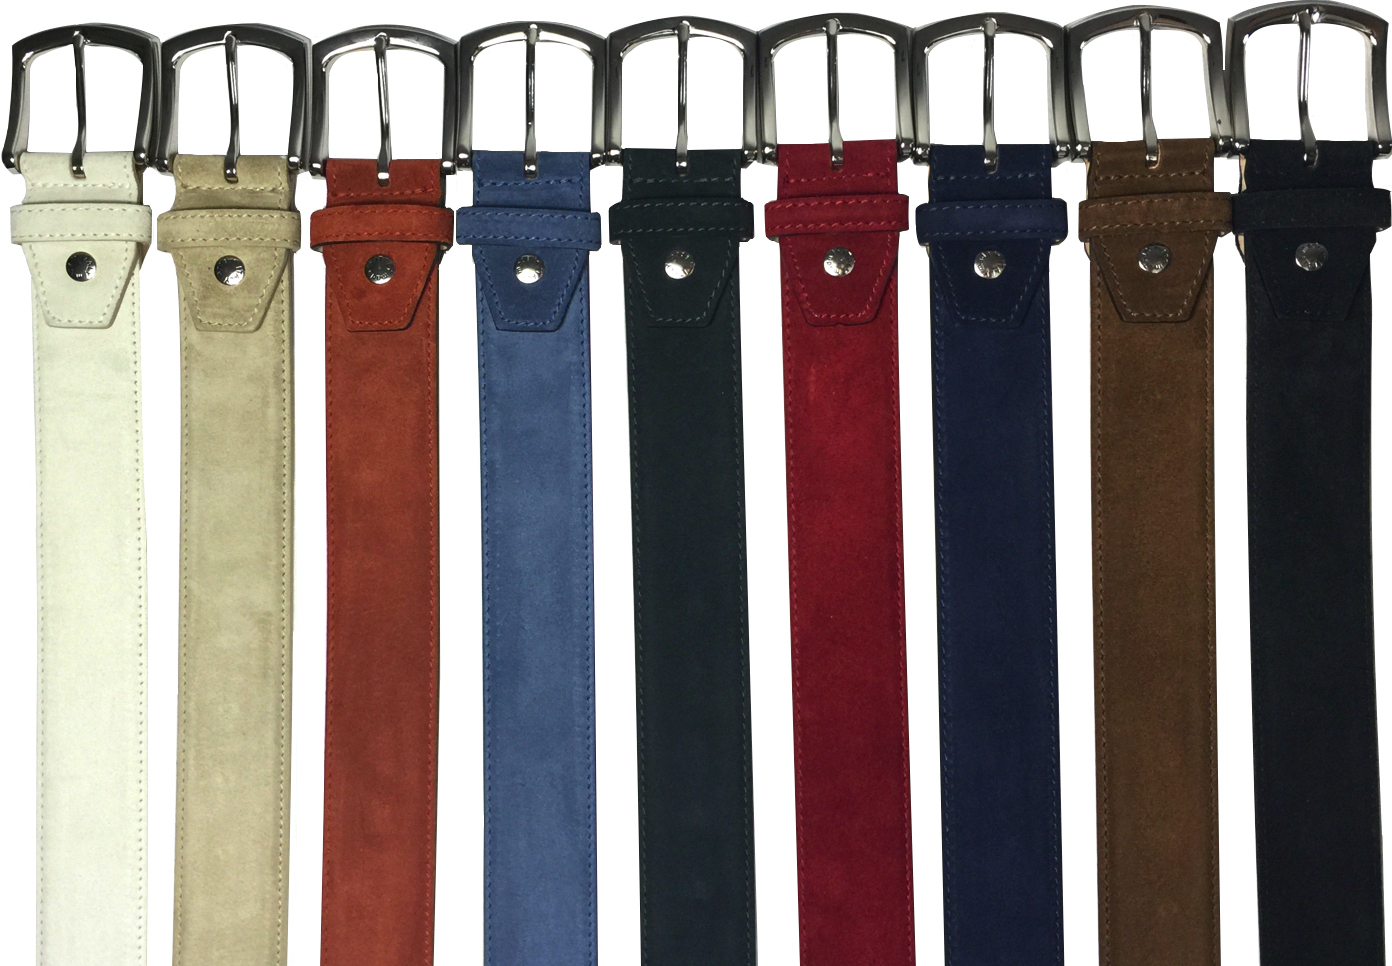 Style #C2218: Cream,   Sand, Cerris, Jean, Slate, Red, Navy, Brick, Black  Velour Suede 40MM Belt  Sizes available: 38 to 48 waist